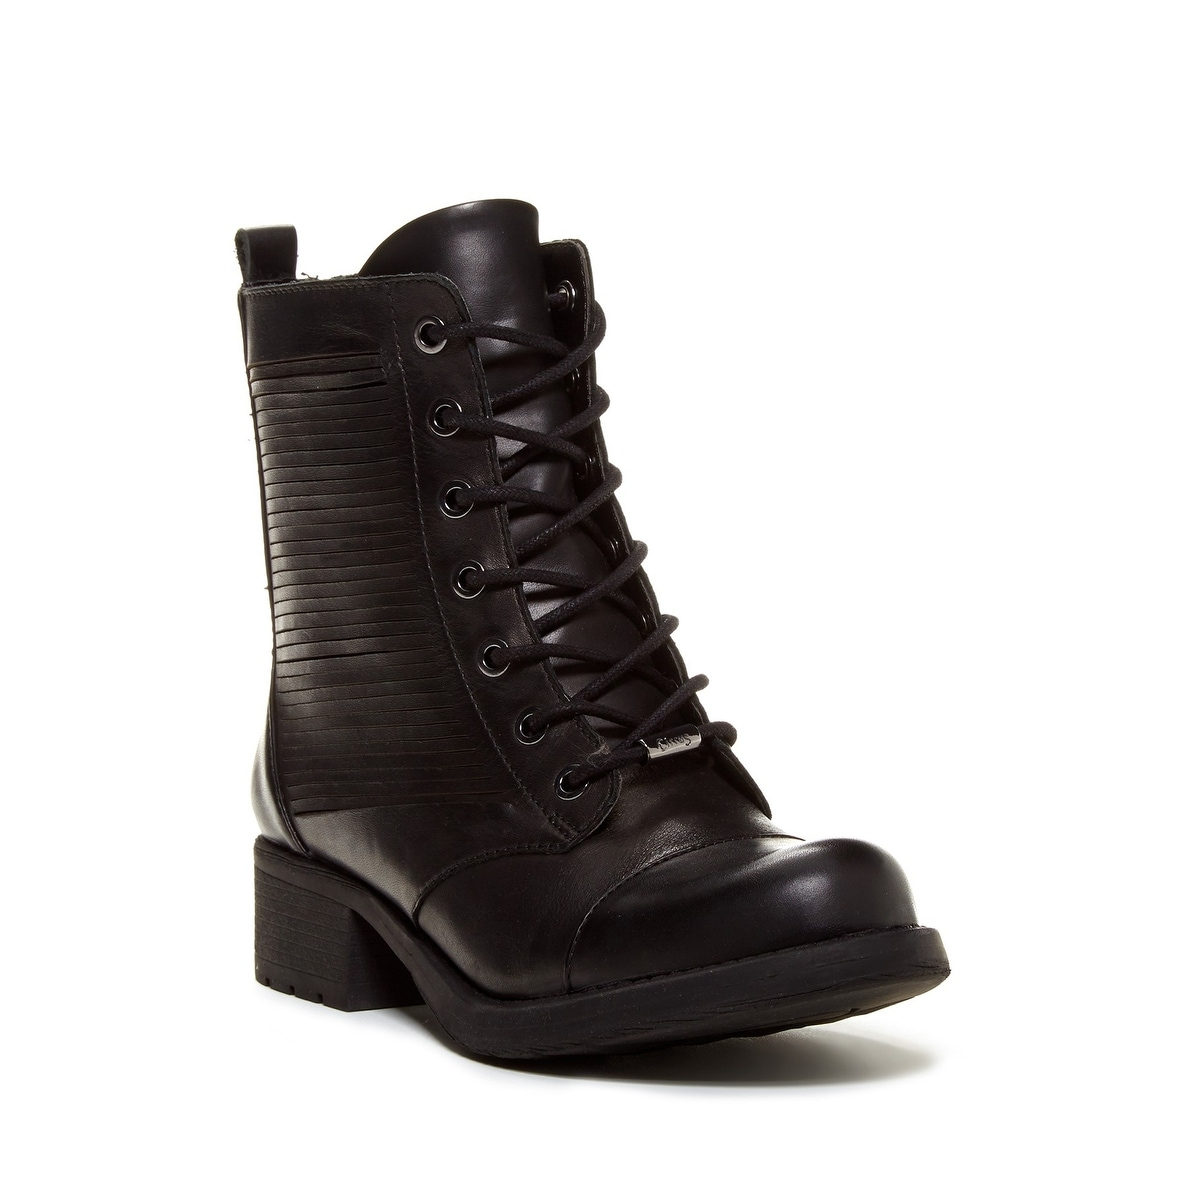 aca6edd343872d Shop Circus by Sam Edelman Women s Gatson Combat Boot - Free Shipping On  Orders Over  45 - Overstock - 14525118